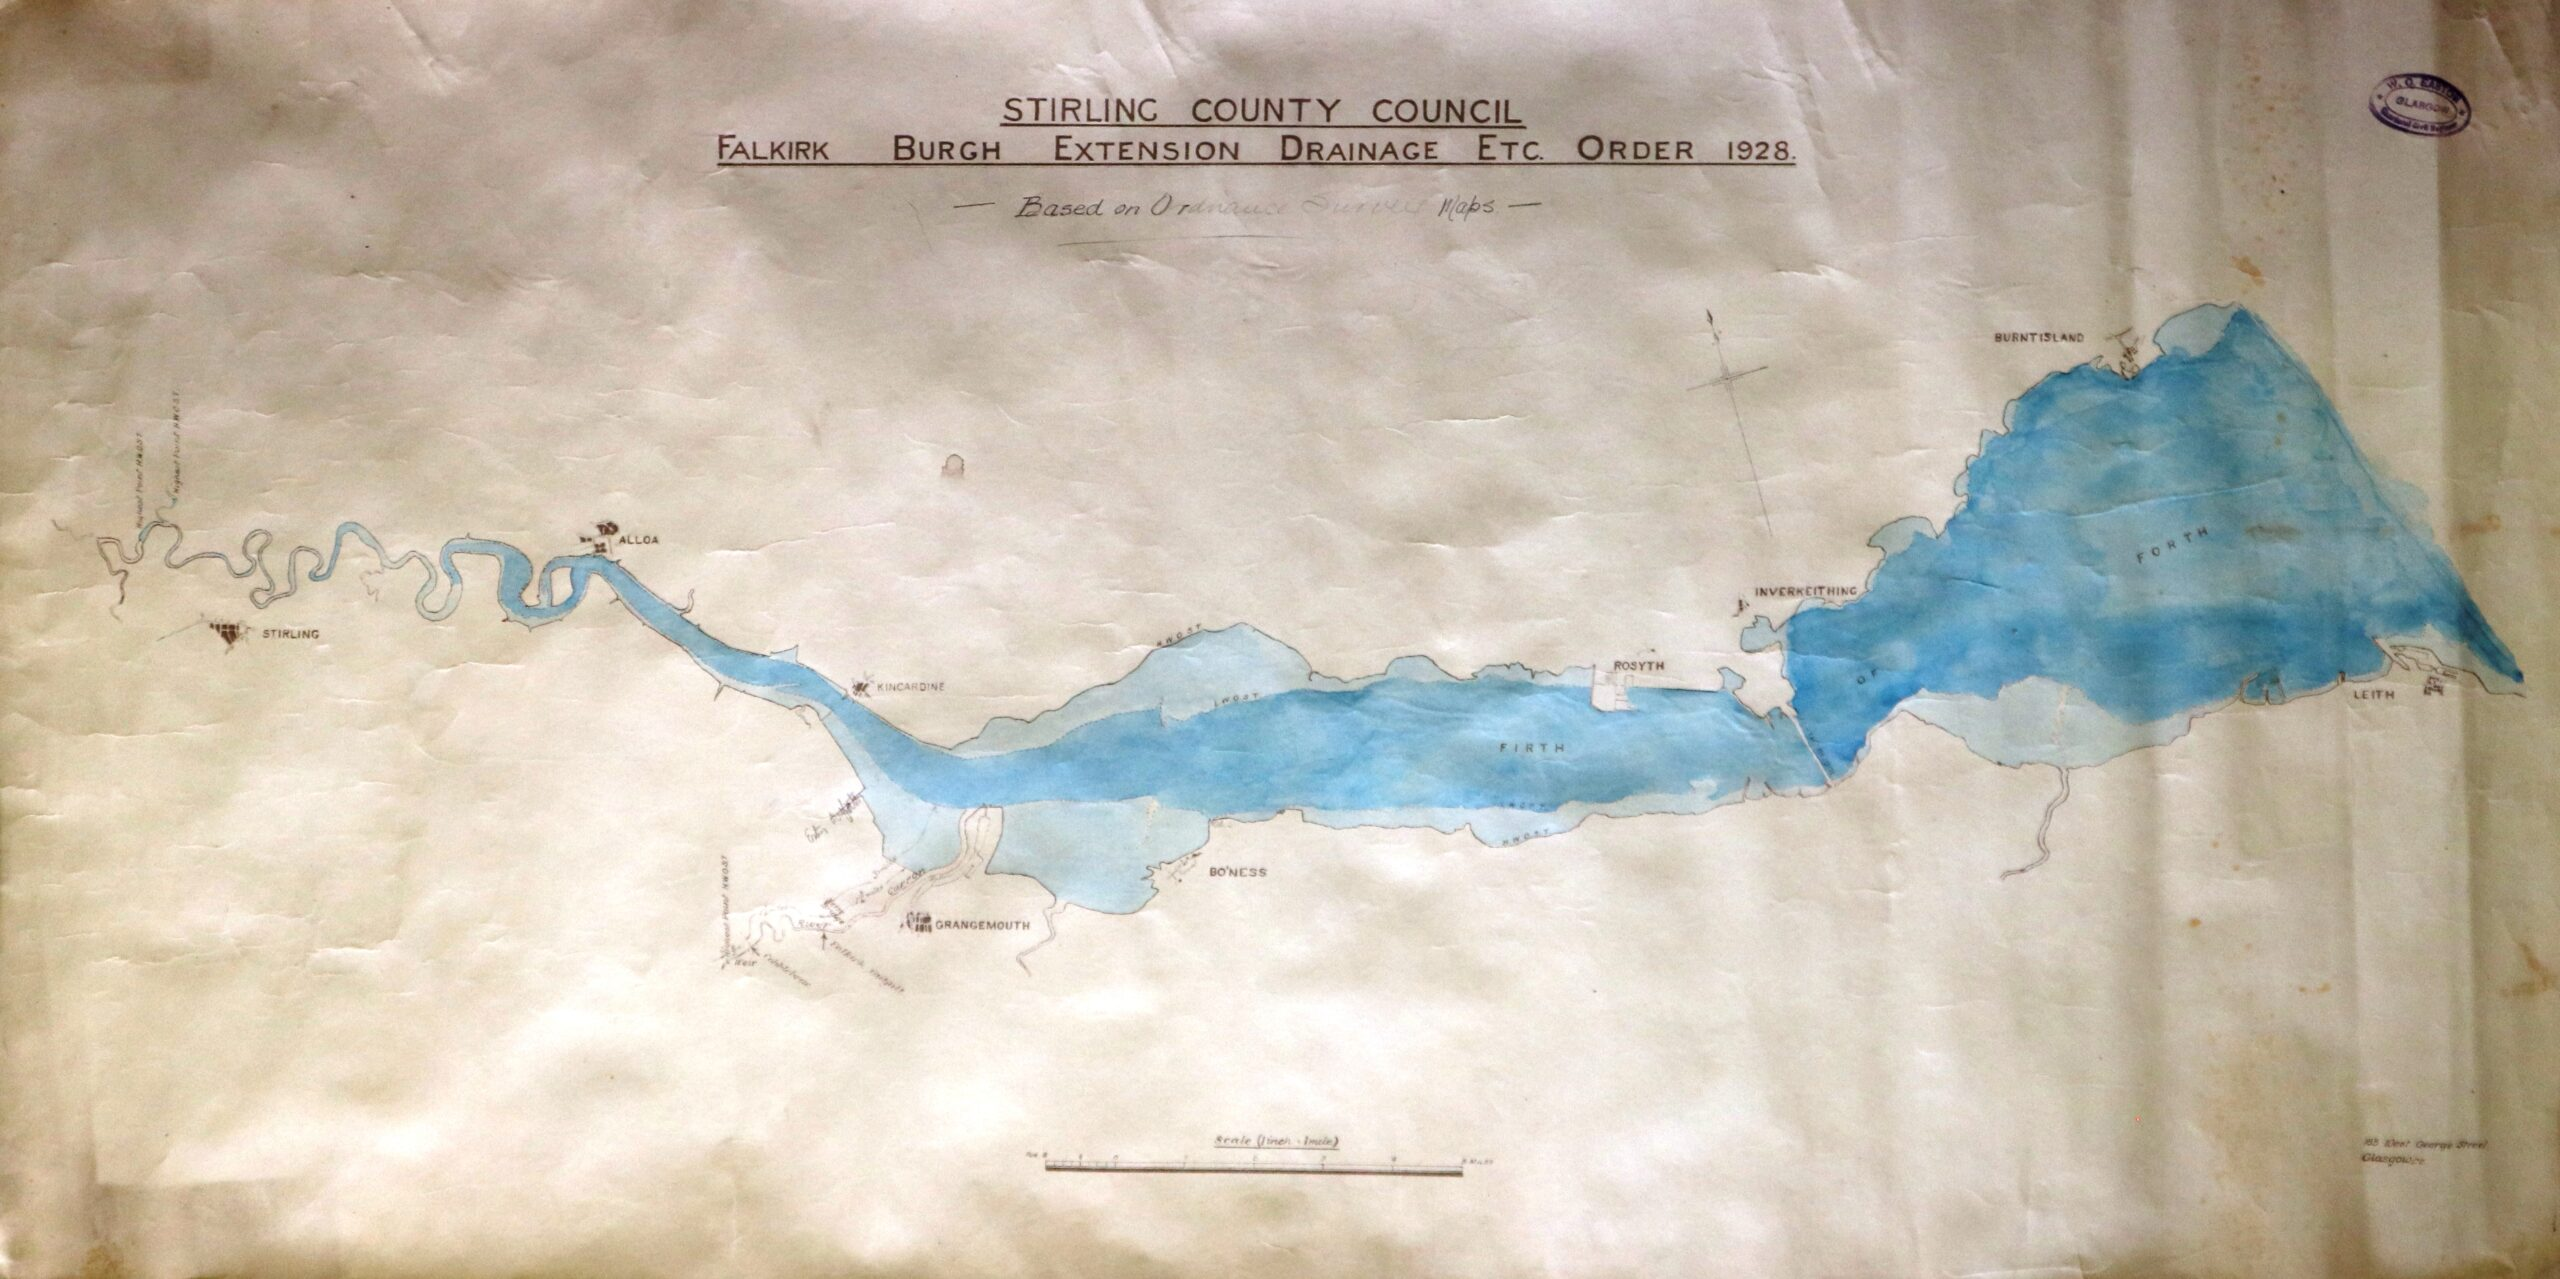 Plan of proposed drainage into the River Forth, 1928